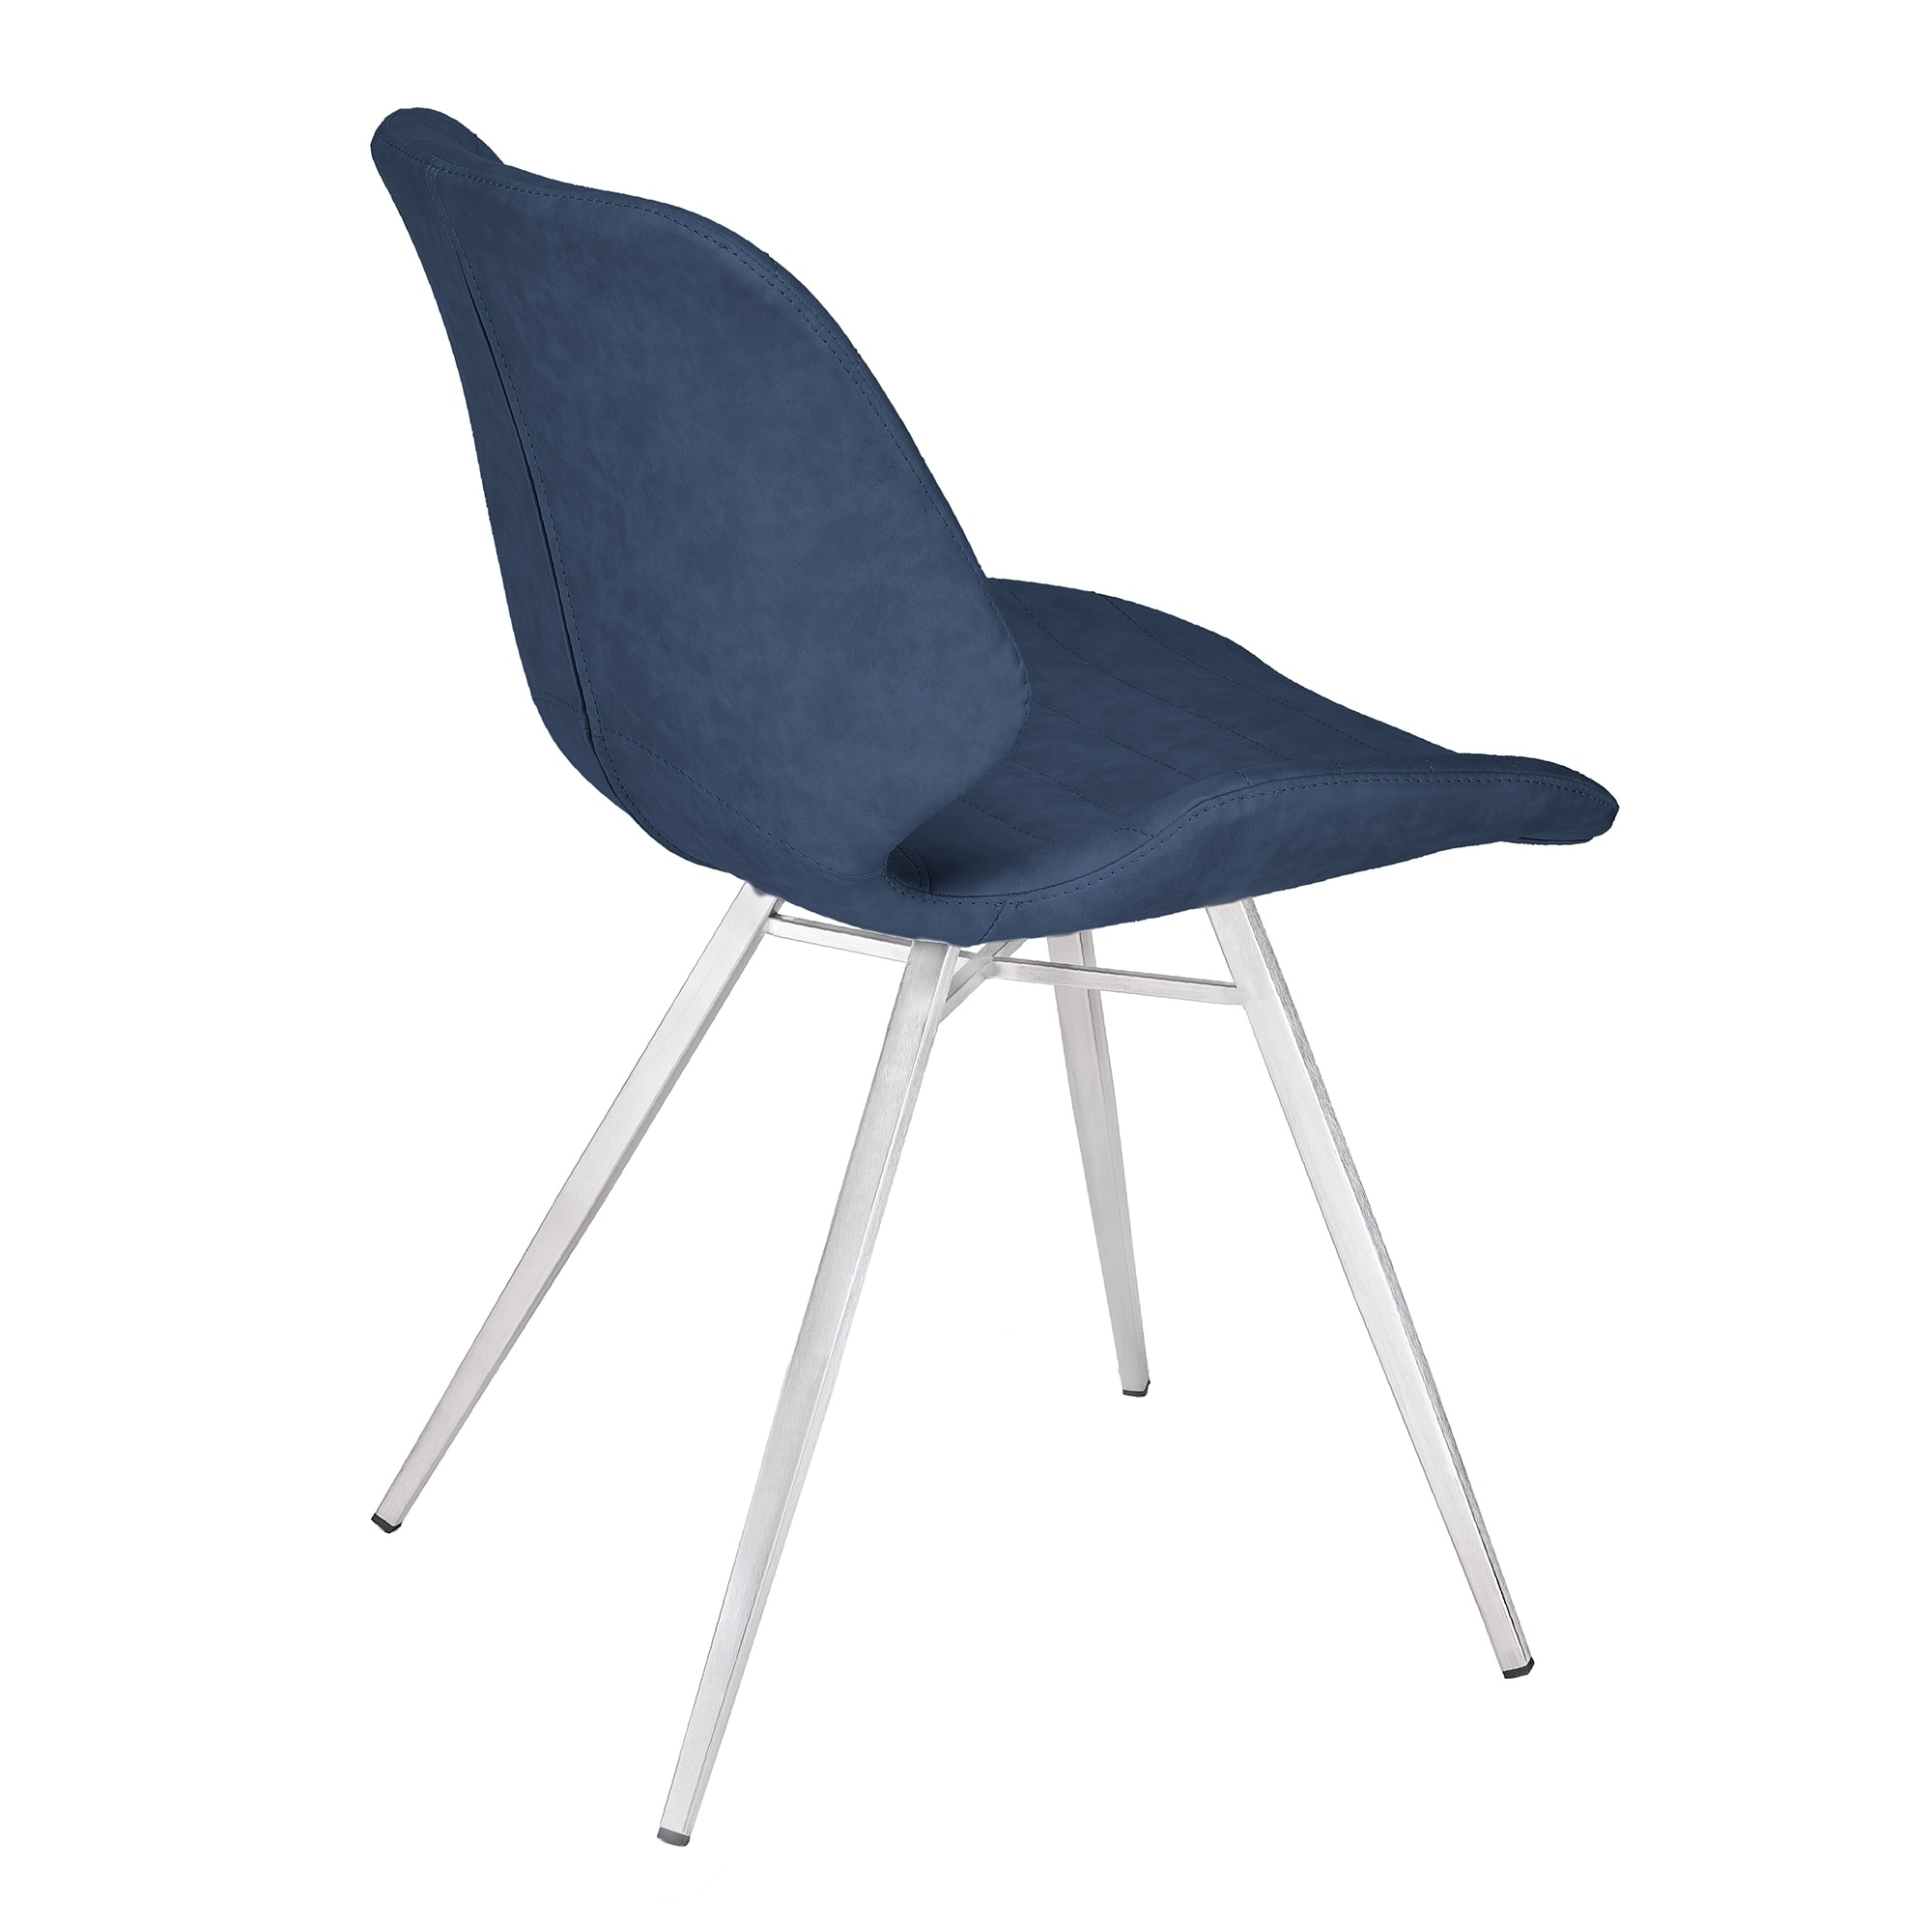 chair cba steel cream leather accent chairs shop armen living valor contemporary dining in brushed stainless with dark vintage blue faux set of 2 on sale free shipping today